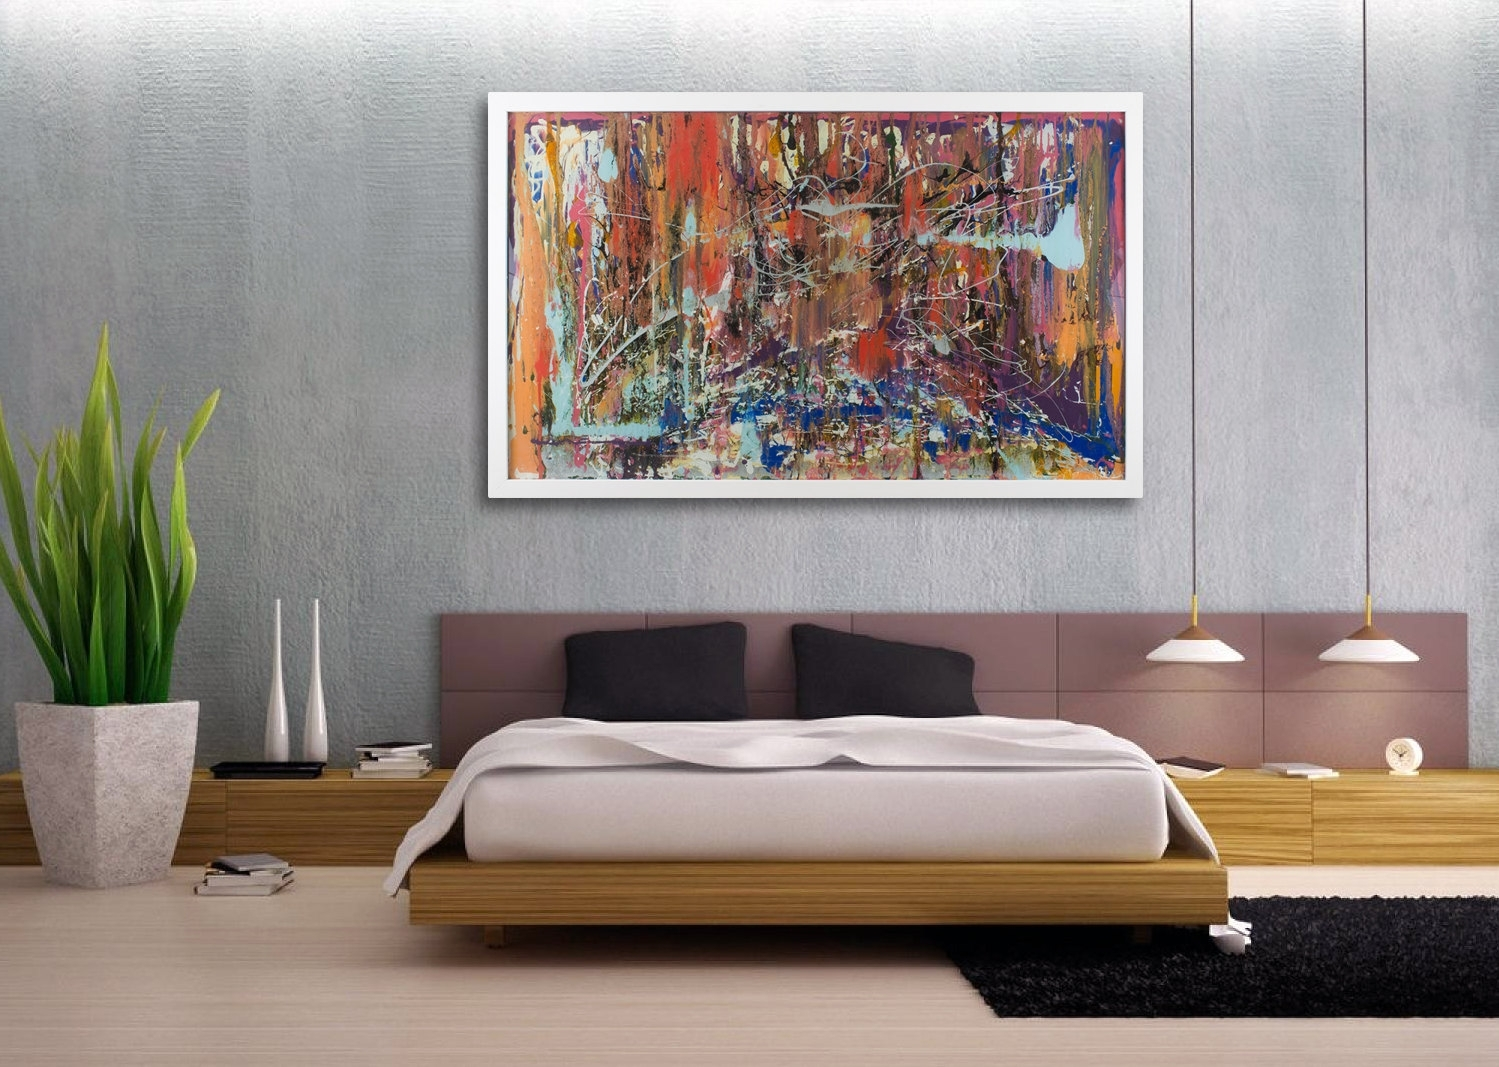 Innovative Way Modern Wall Decor Room — Joanne Russo Homesjoanne With Regard To Most Up To Date Inexpensive Abstract Wall Art (View 9 of 20)